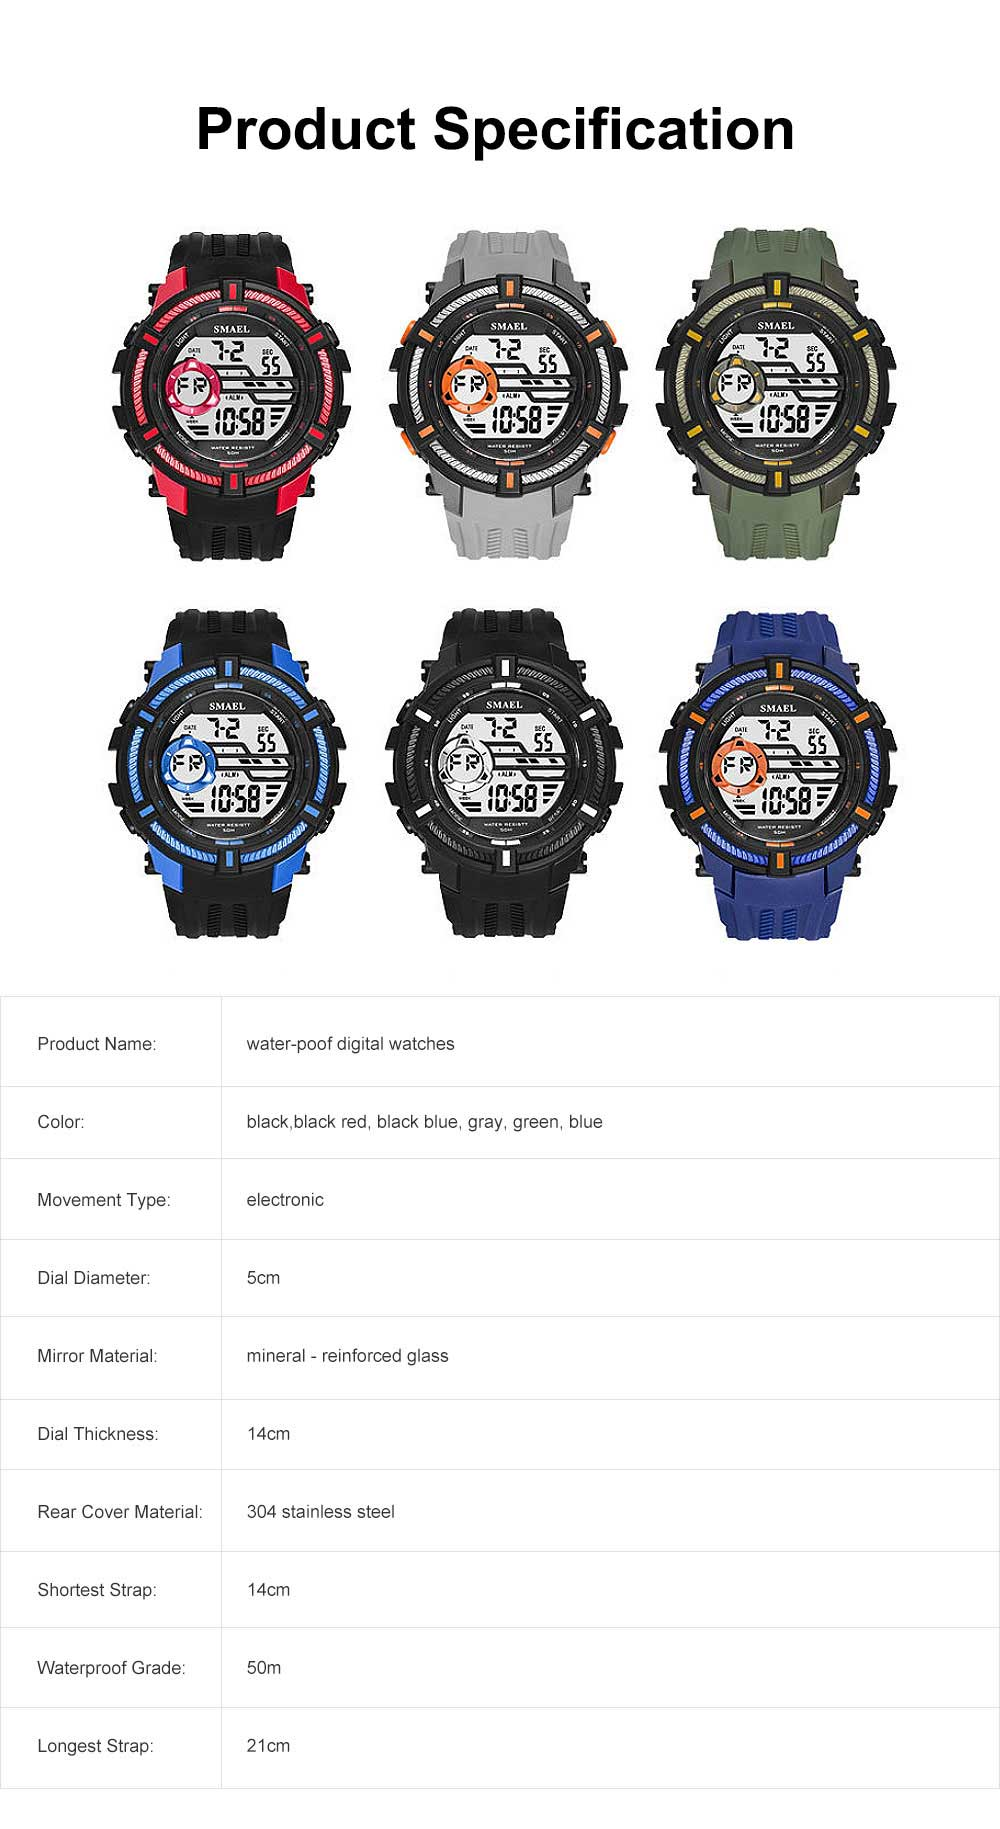 Multifunction Smart Electronic Watch, Luminous Mode, Water-proof, with Resin Strap 6